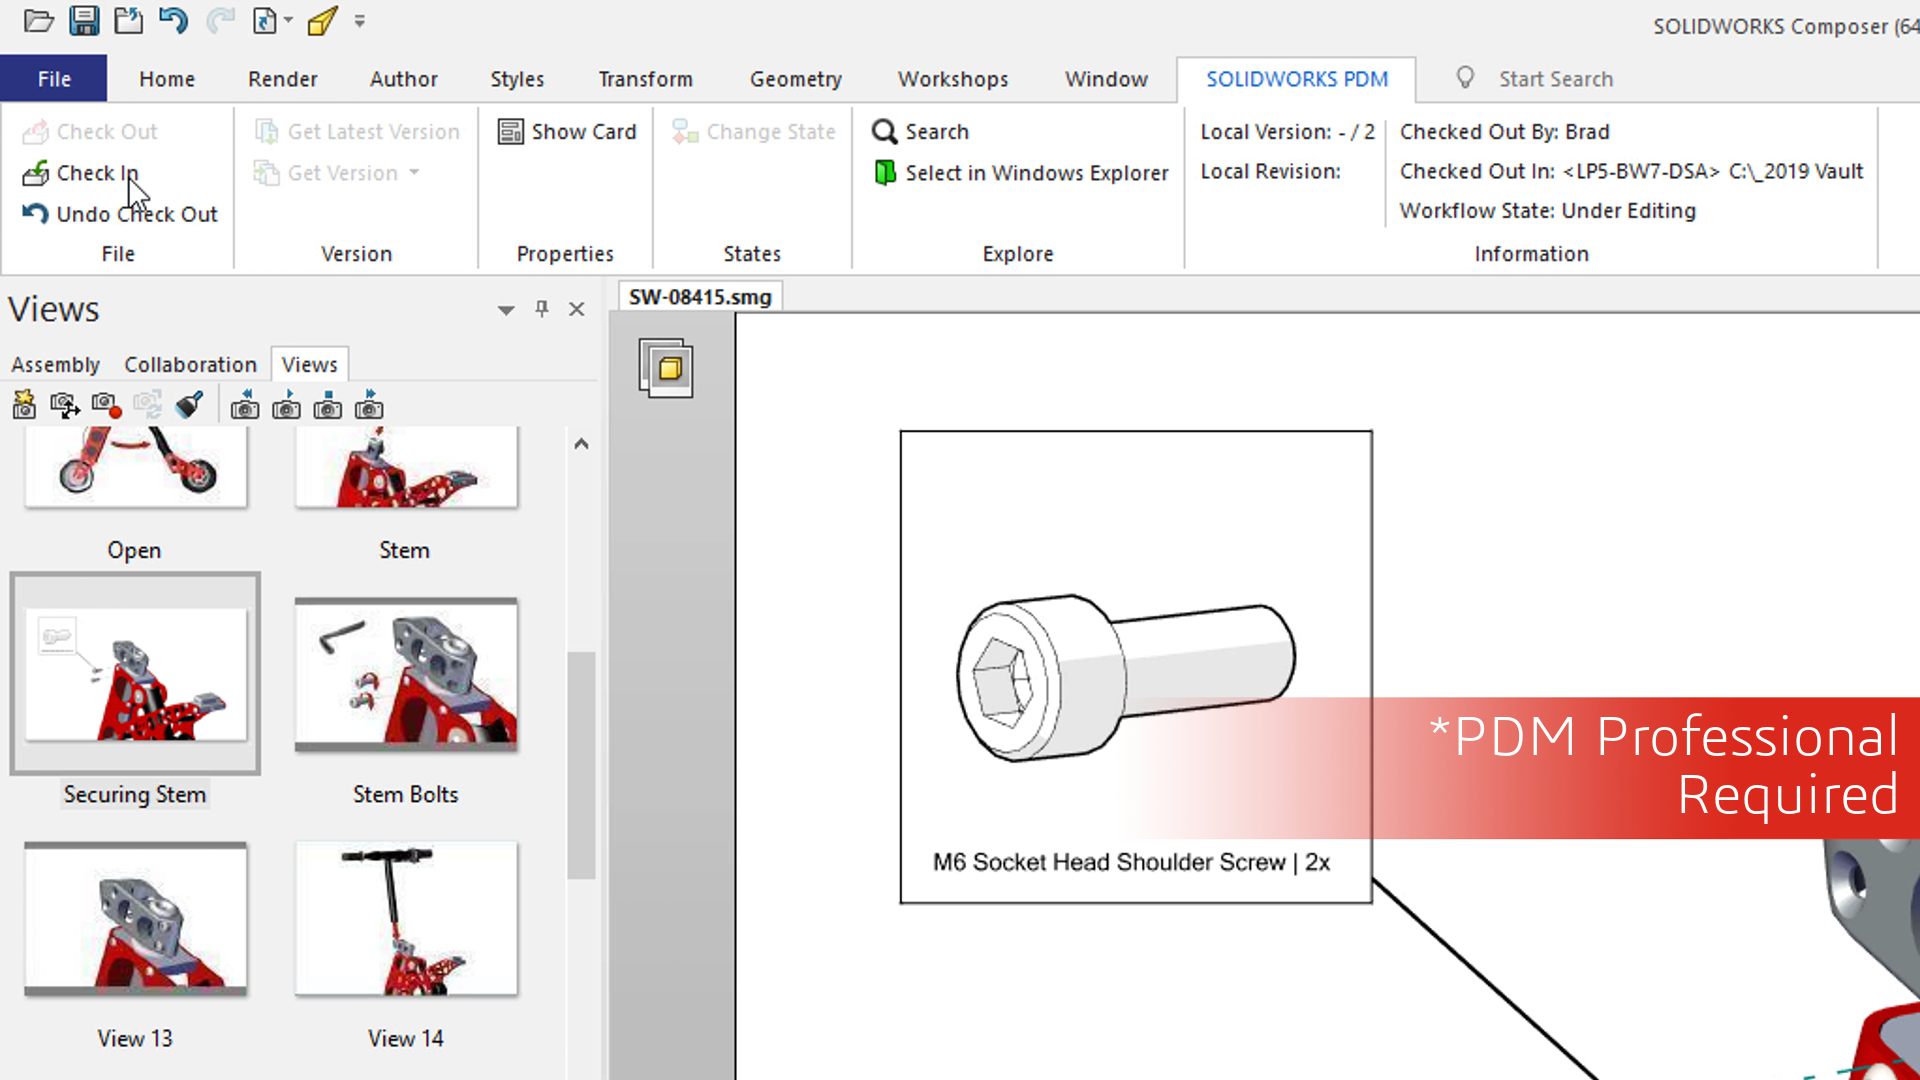 Uddating solidworks from 2019 to 2019